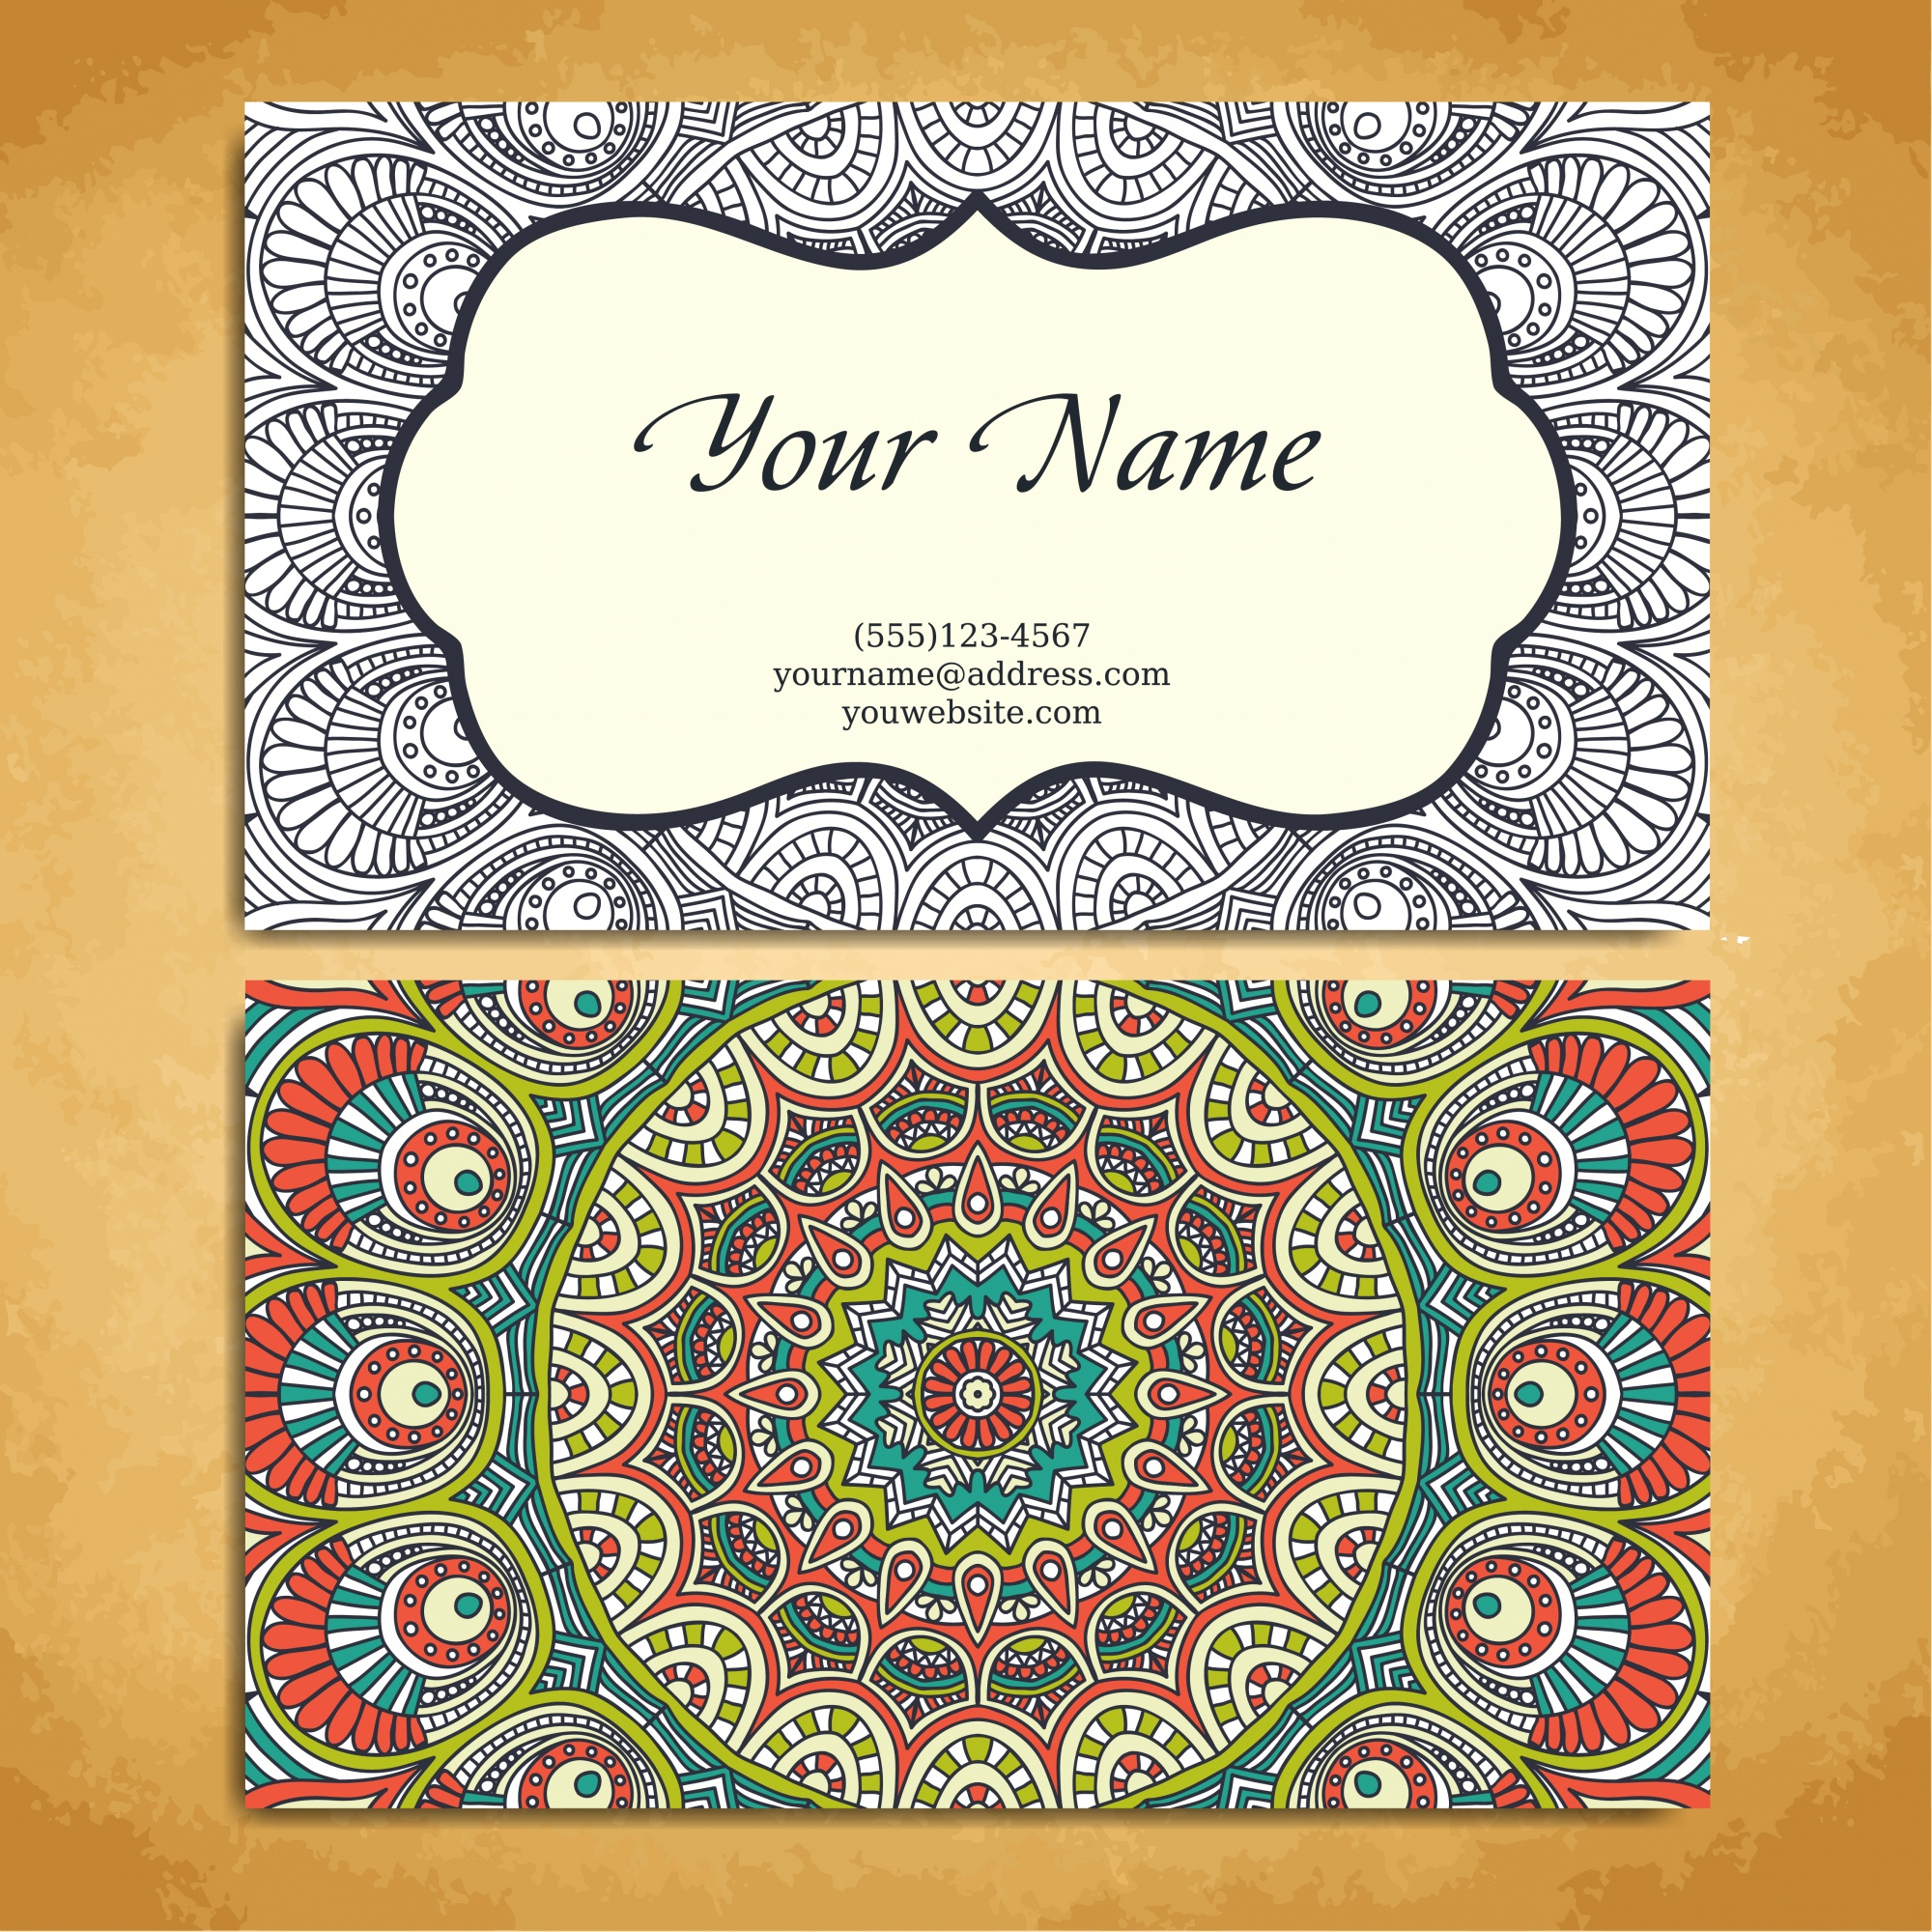 Ethnic style business card